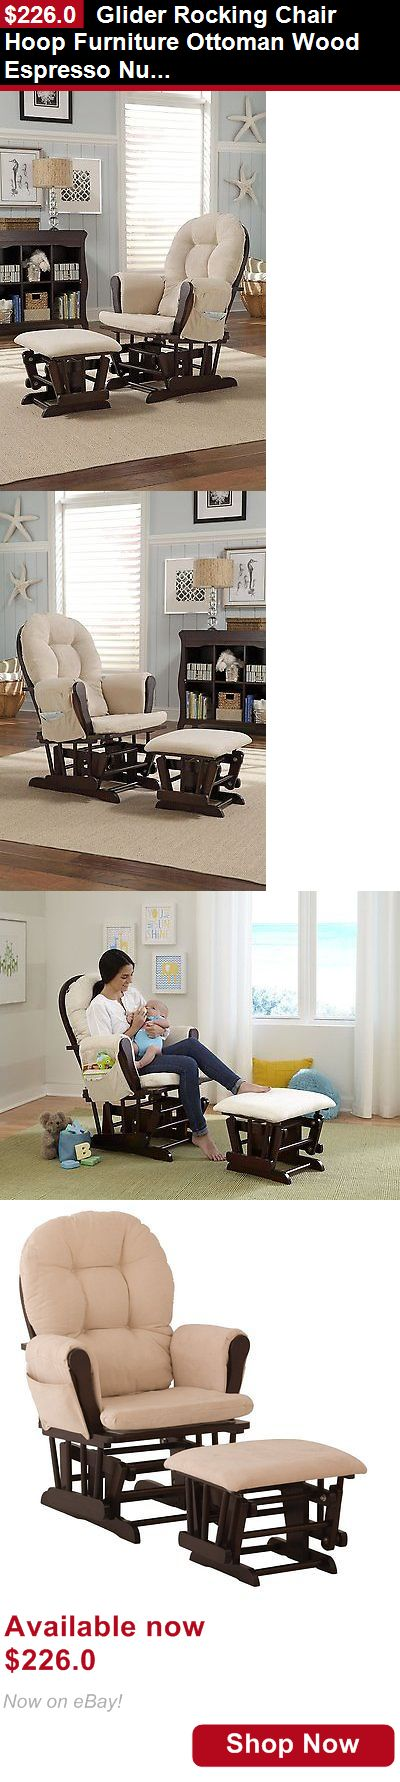 Rockers Gliders: Glider Rocking Chair Hoop Furniture Ottoman Wood Espresso Nursery Baby Cushion BUY IT NOW ONLY: $226.0